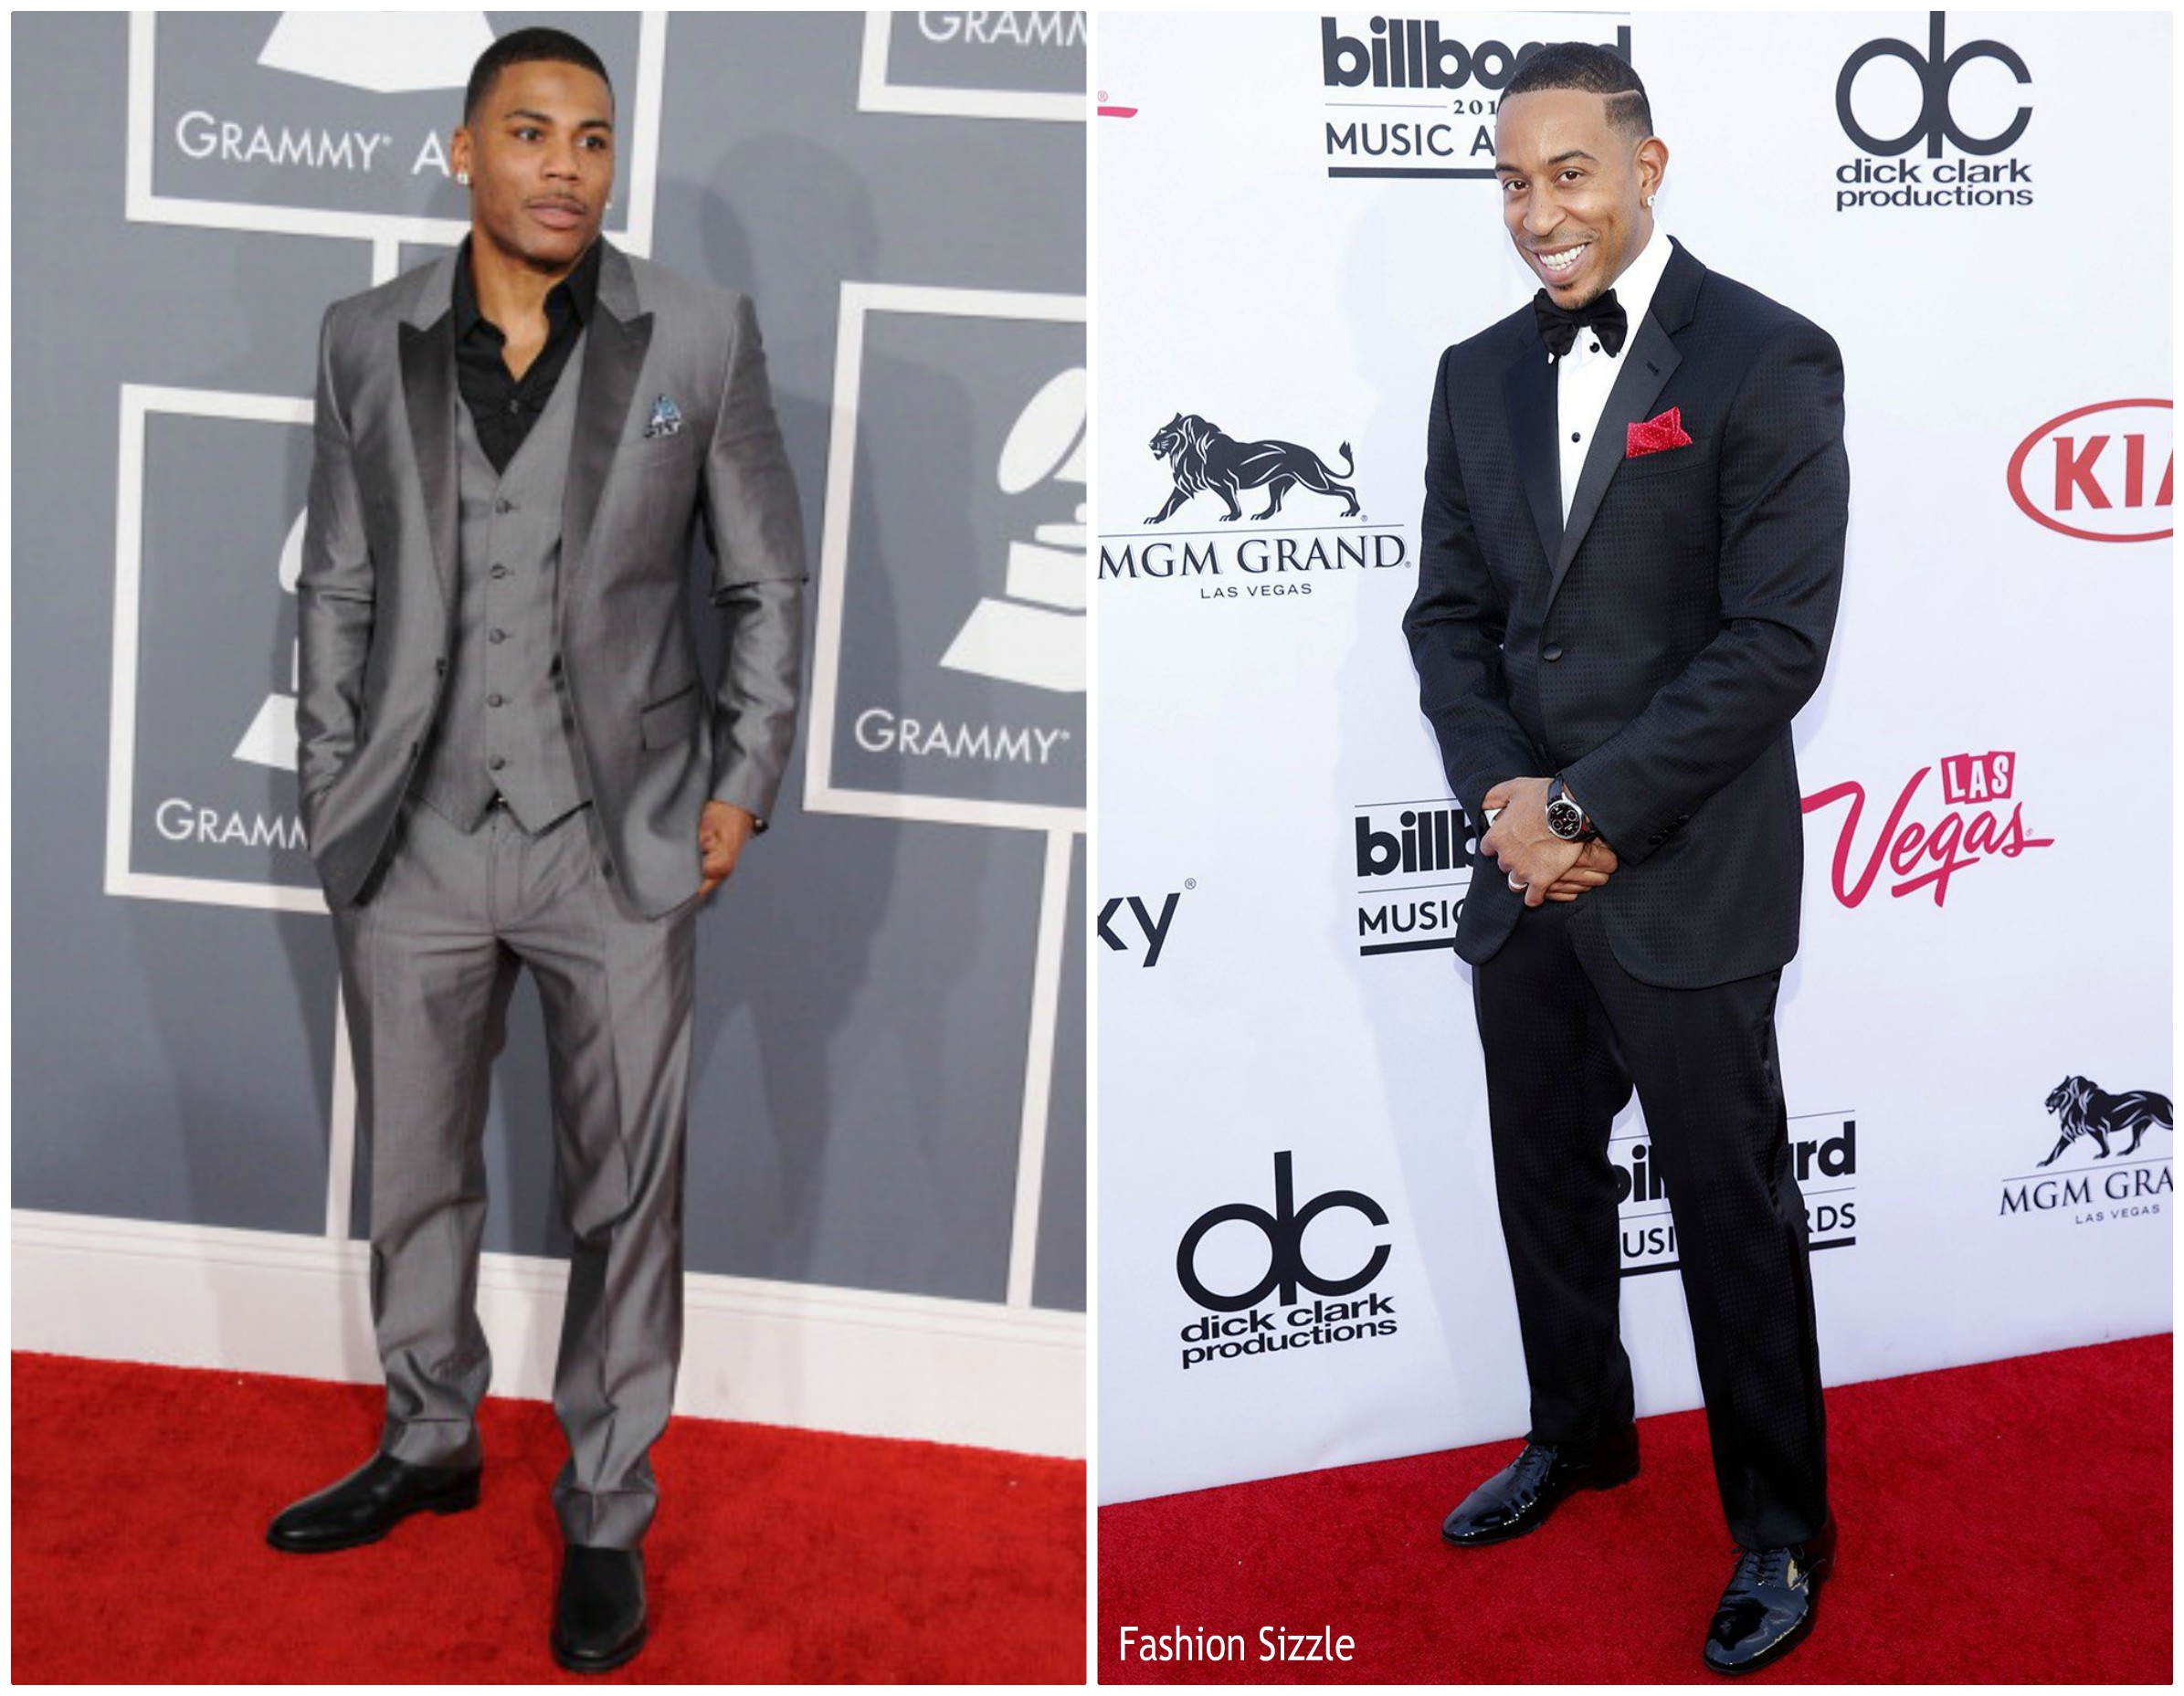 nelly-and-ludacris-verzuz-music-battle-took-fans-on-a hiphop-journey